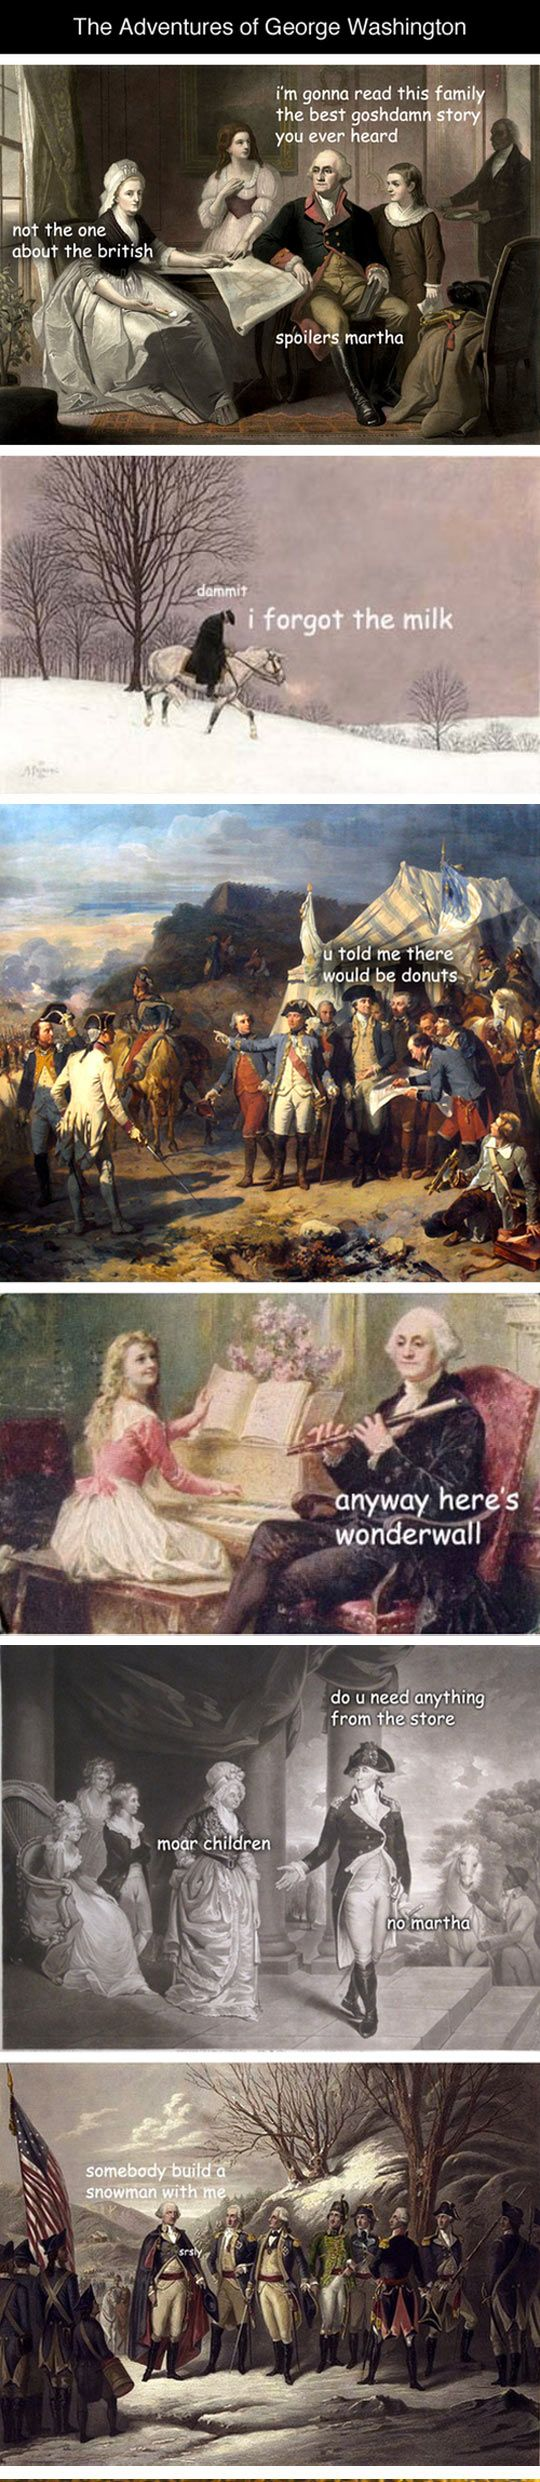 The Adventures of George Washington